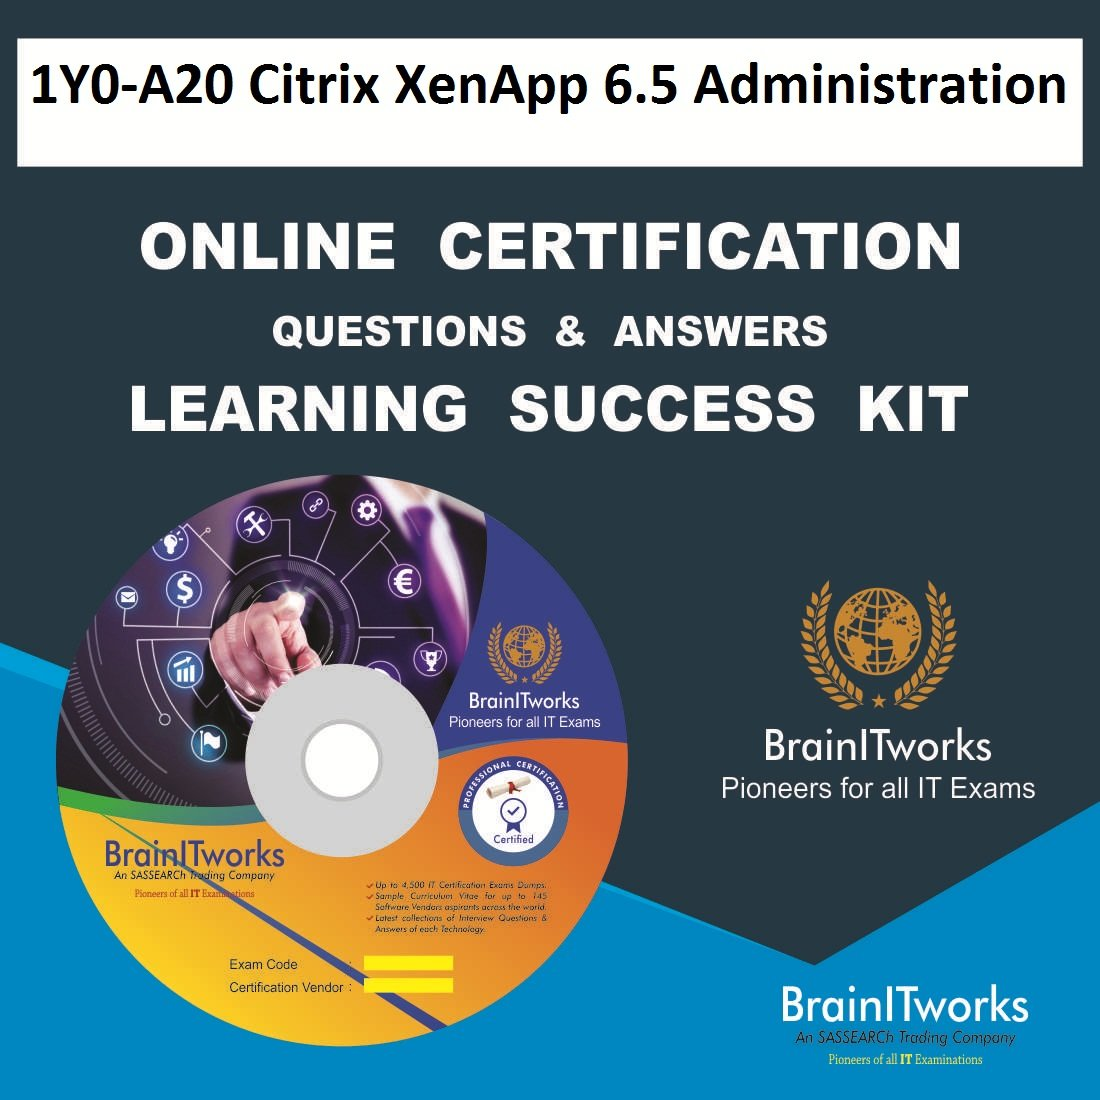 1Y0-A20 Citrix XenApp 6.5 Administration Online Certification Learning Made  Easy: Amazon.co.uk: DVD & Blu-ray